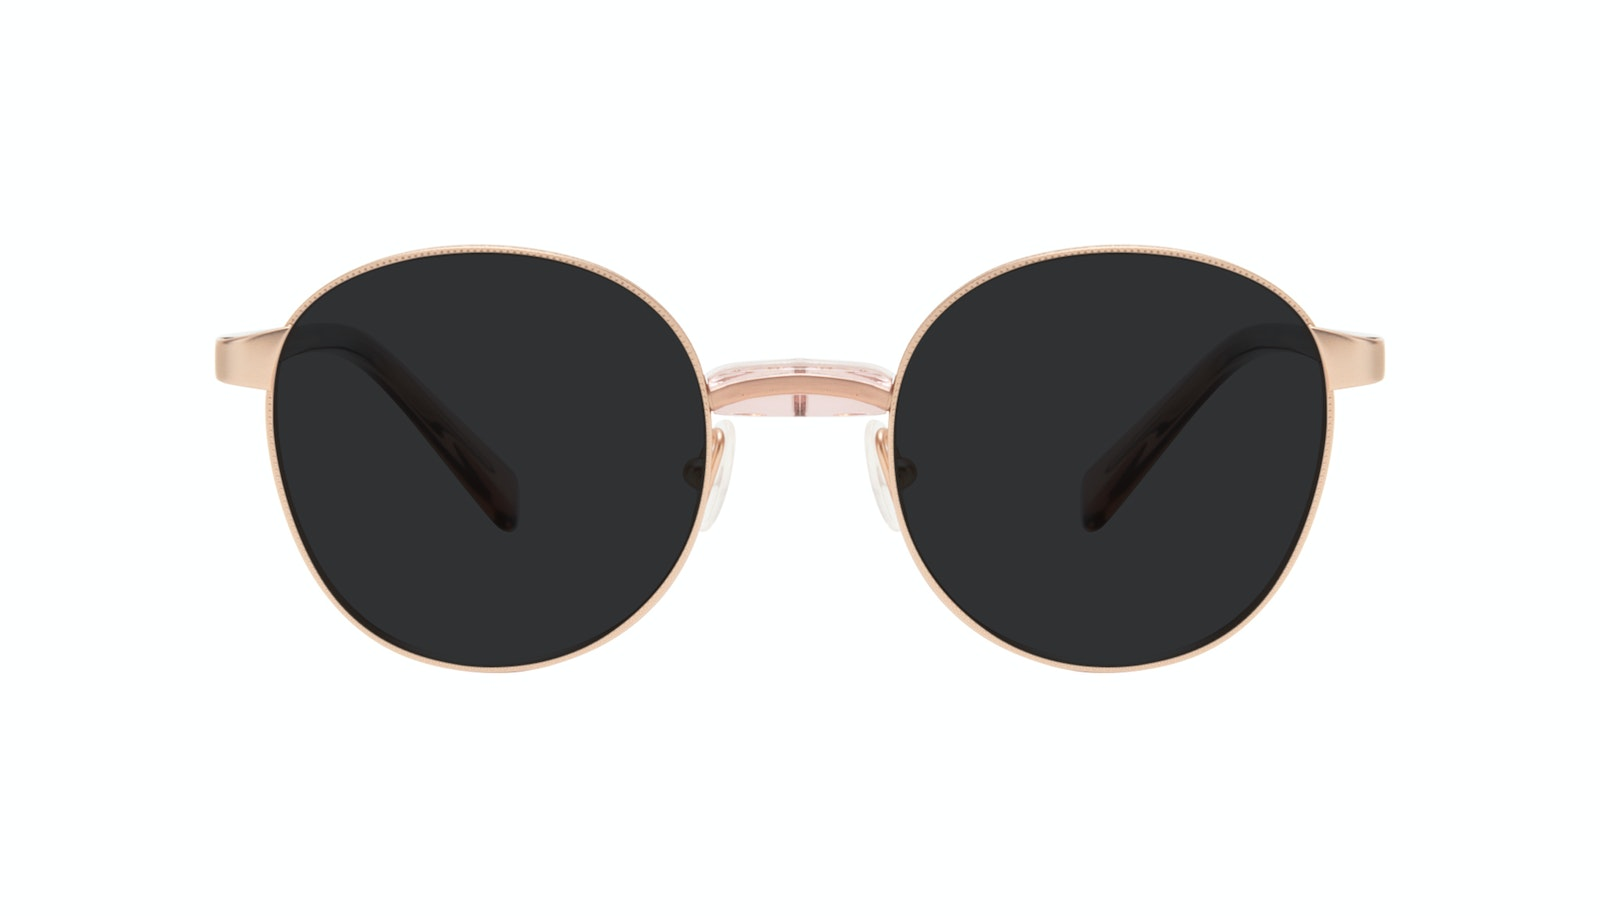 Affordable Fashion Glasses Round Sunglasses Women Curious Rose